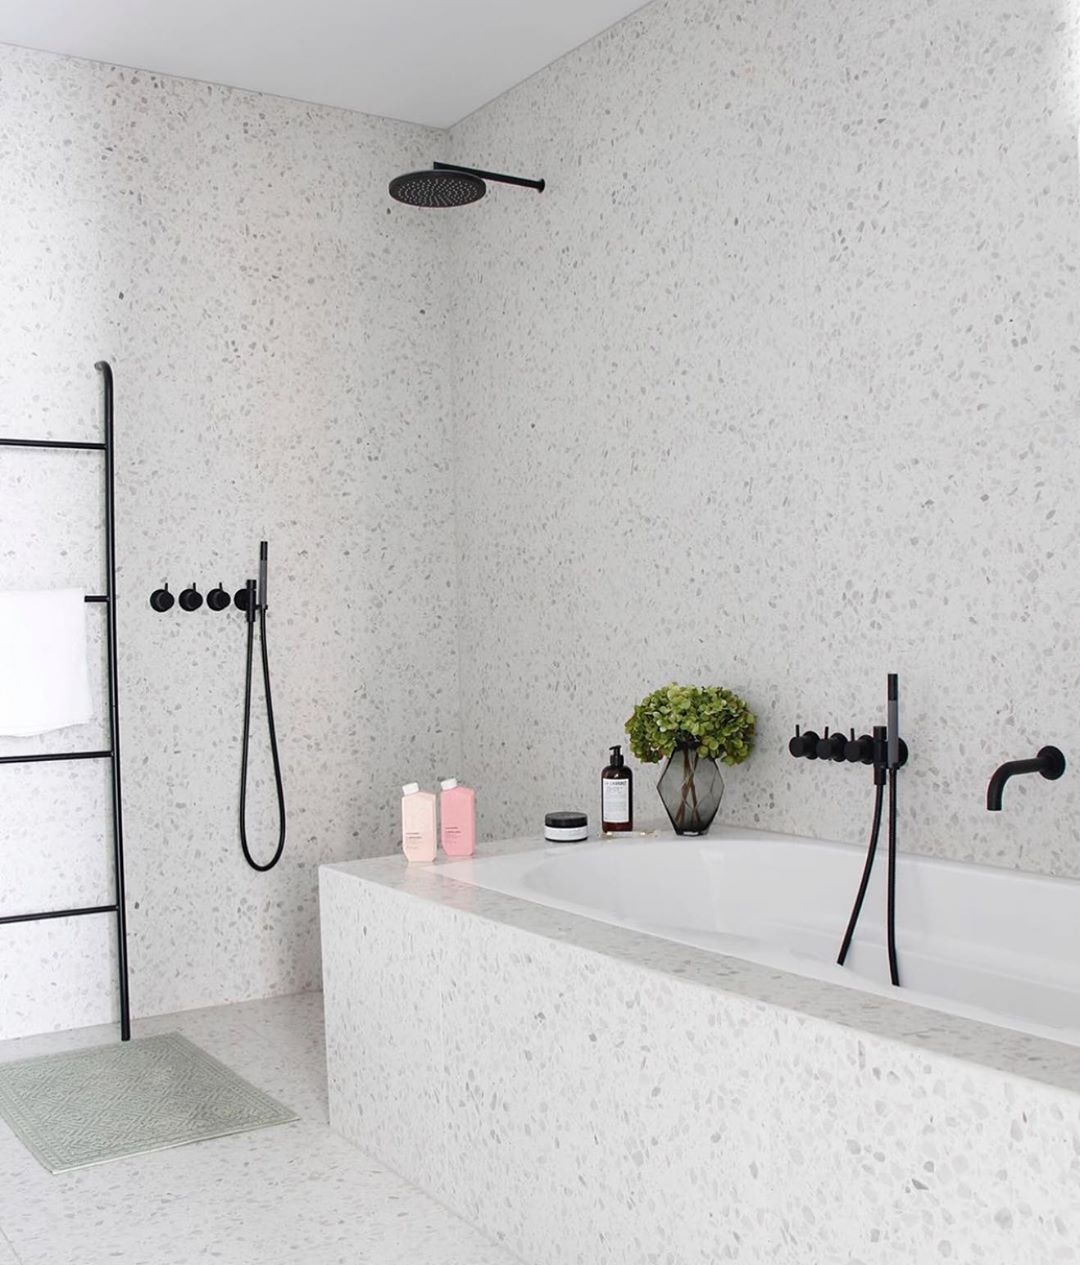 "Onsen on Instagram: ""I feel cleaner just looking at this shower — beautiful! // @lindaben _ #bathroomgoals #minimalisthome"""